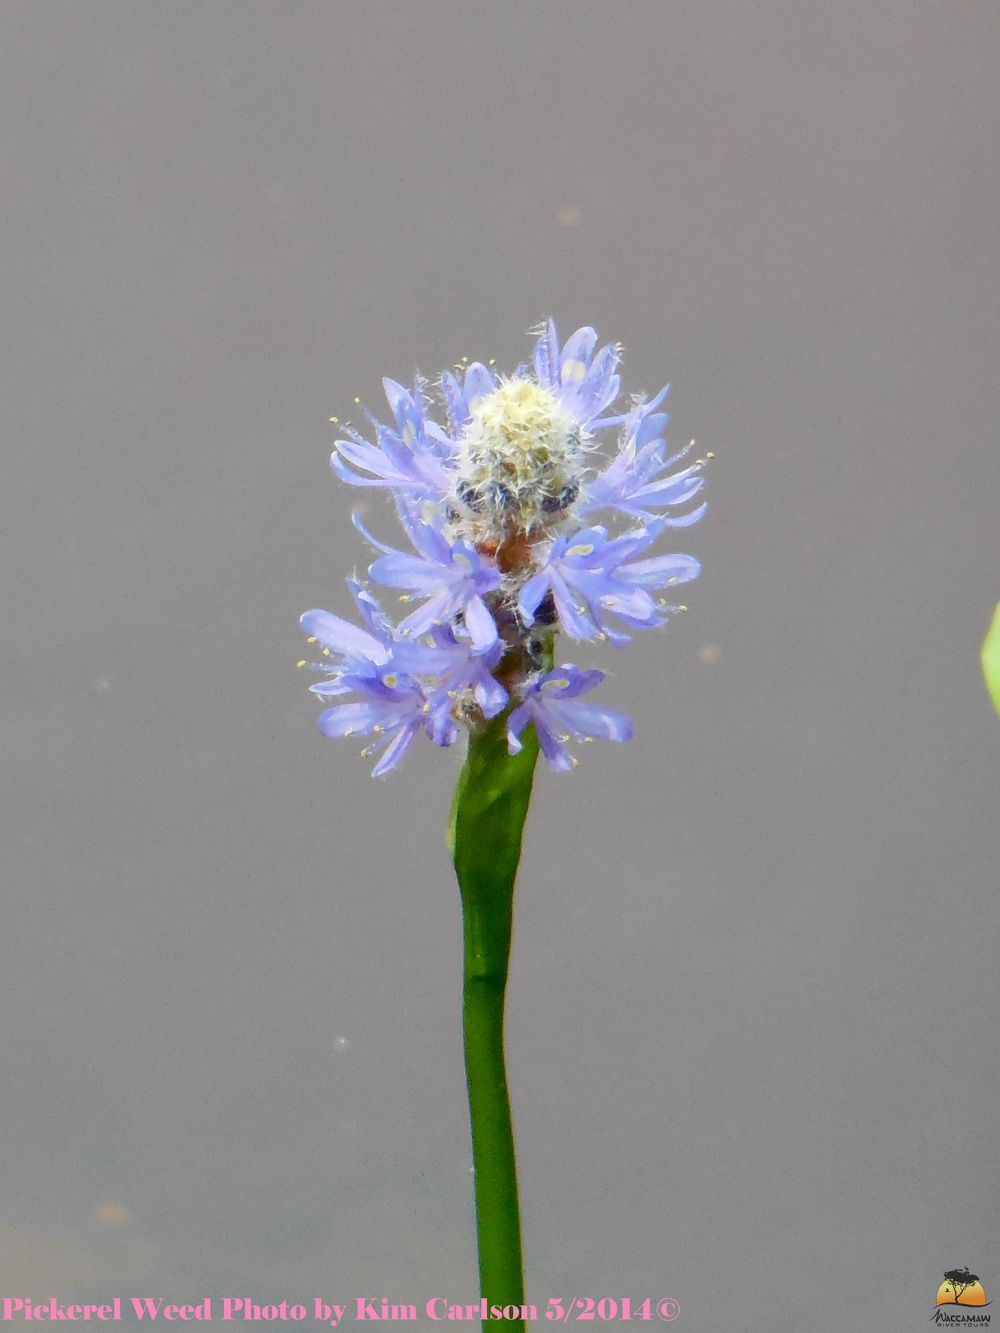 Pickerel Weed Watermark.jpg